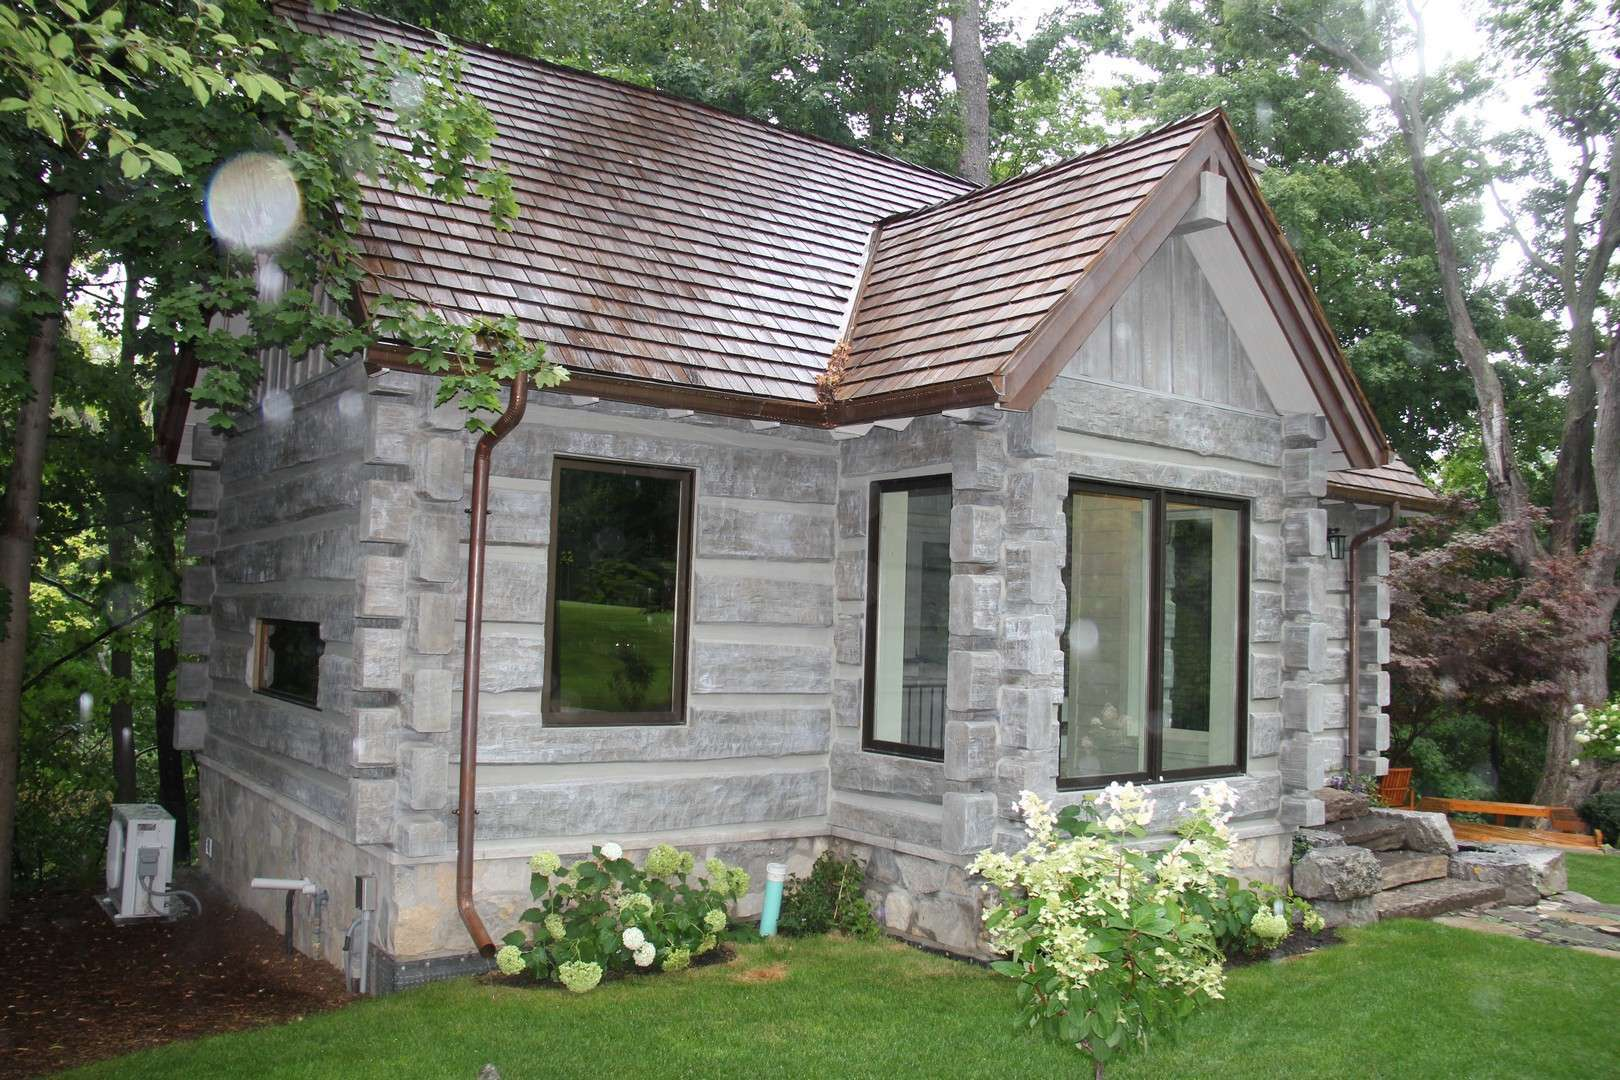 Toronto Canada Concrete Log Cabin on Small Log Cabin Home House Plans